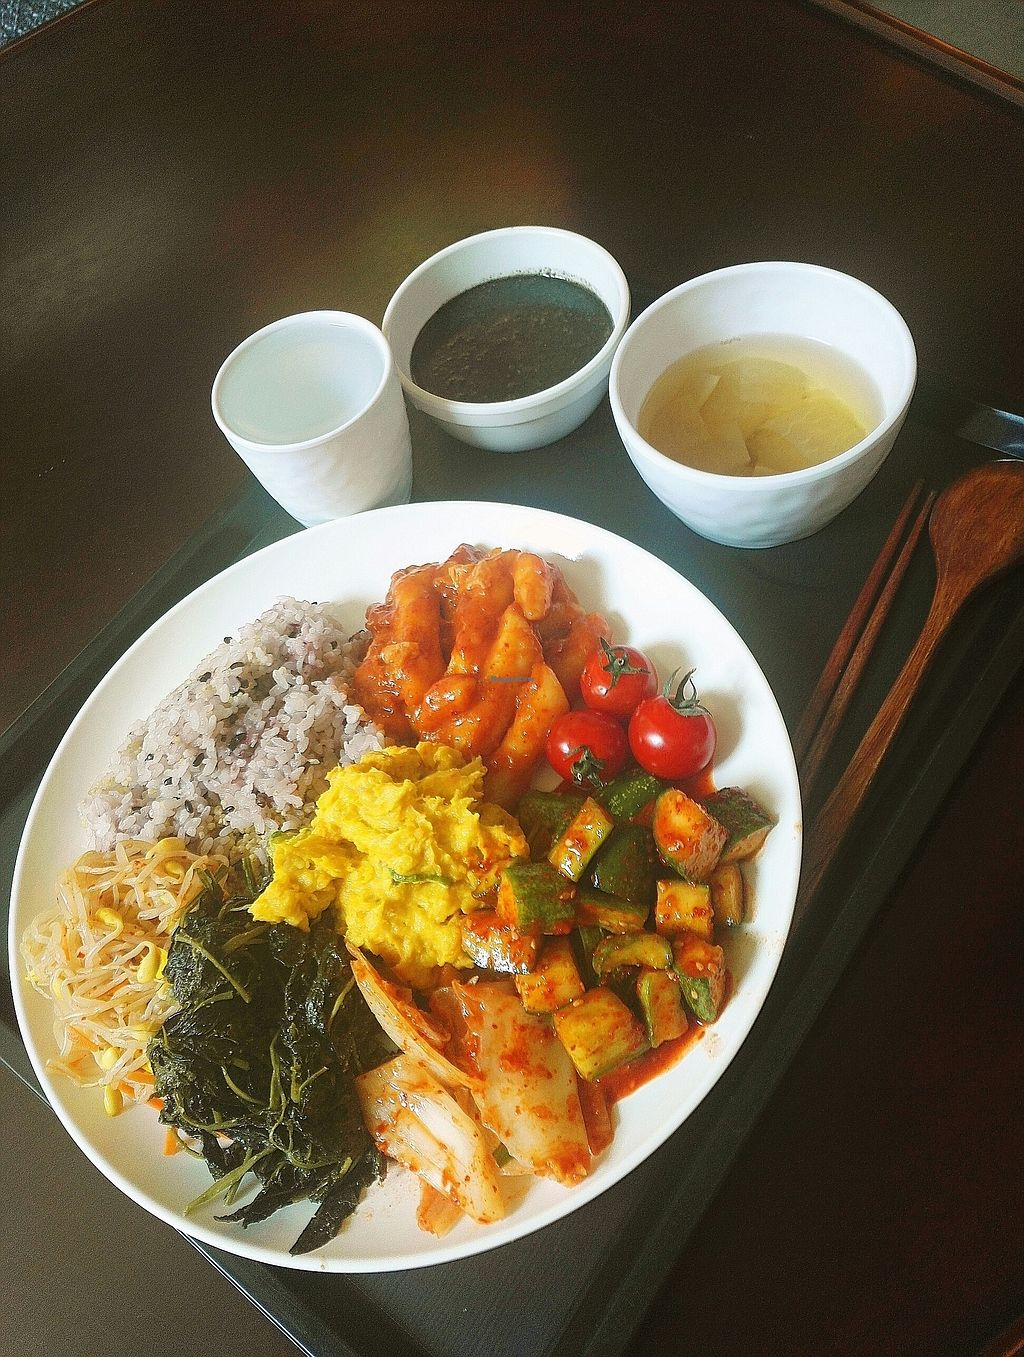 """Photo of CLOSED: Samso - 삼소  by <a href=""""/members/profile/EOH"""">EOH</a> <br/>Delicious!!! The tteokbokki is amazing and the black Sesame juk is so good! <br/> July 31, 2017  - <a href='/contact/abuse/image/84500/287241'>Report</a>"""